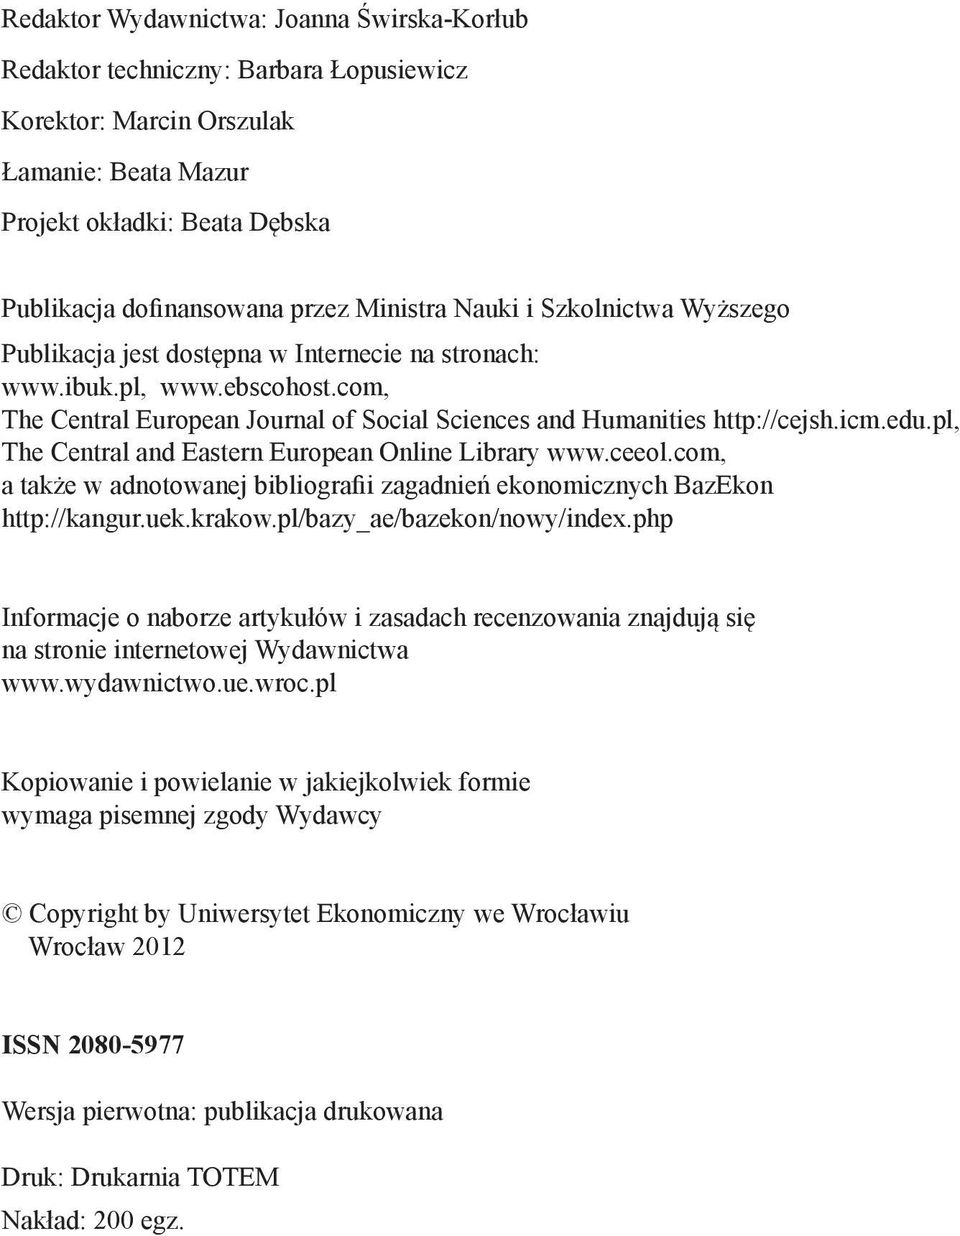 icm.edu.pl, The Central and Eastern European Online Library www.ceeol.com, a także w adnotowanej bibliografii zagadnień ekonomicznych BazEkon http://kangur.uek.krakow.pl/bazy_ae/bazekon/nowy/index.